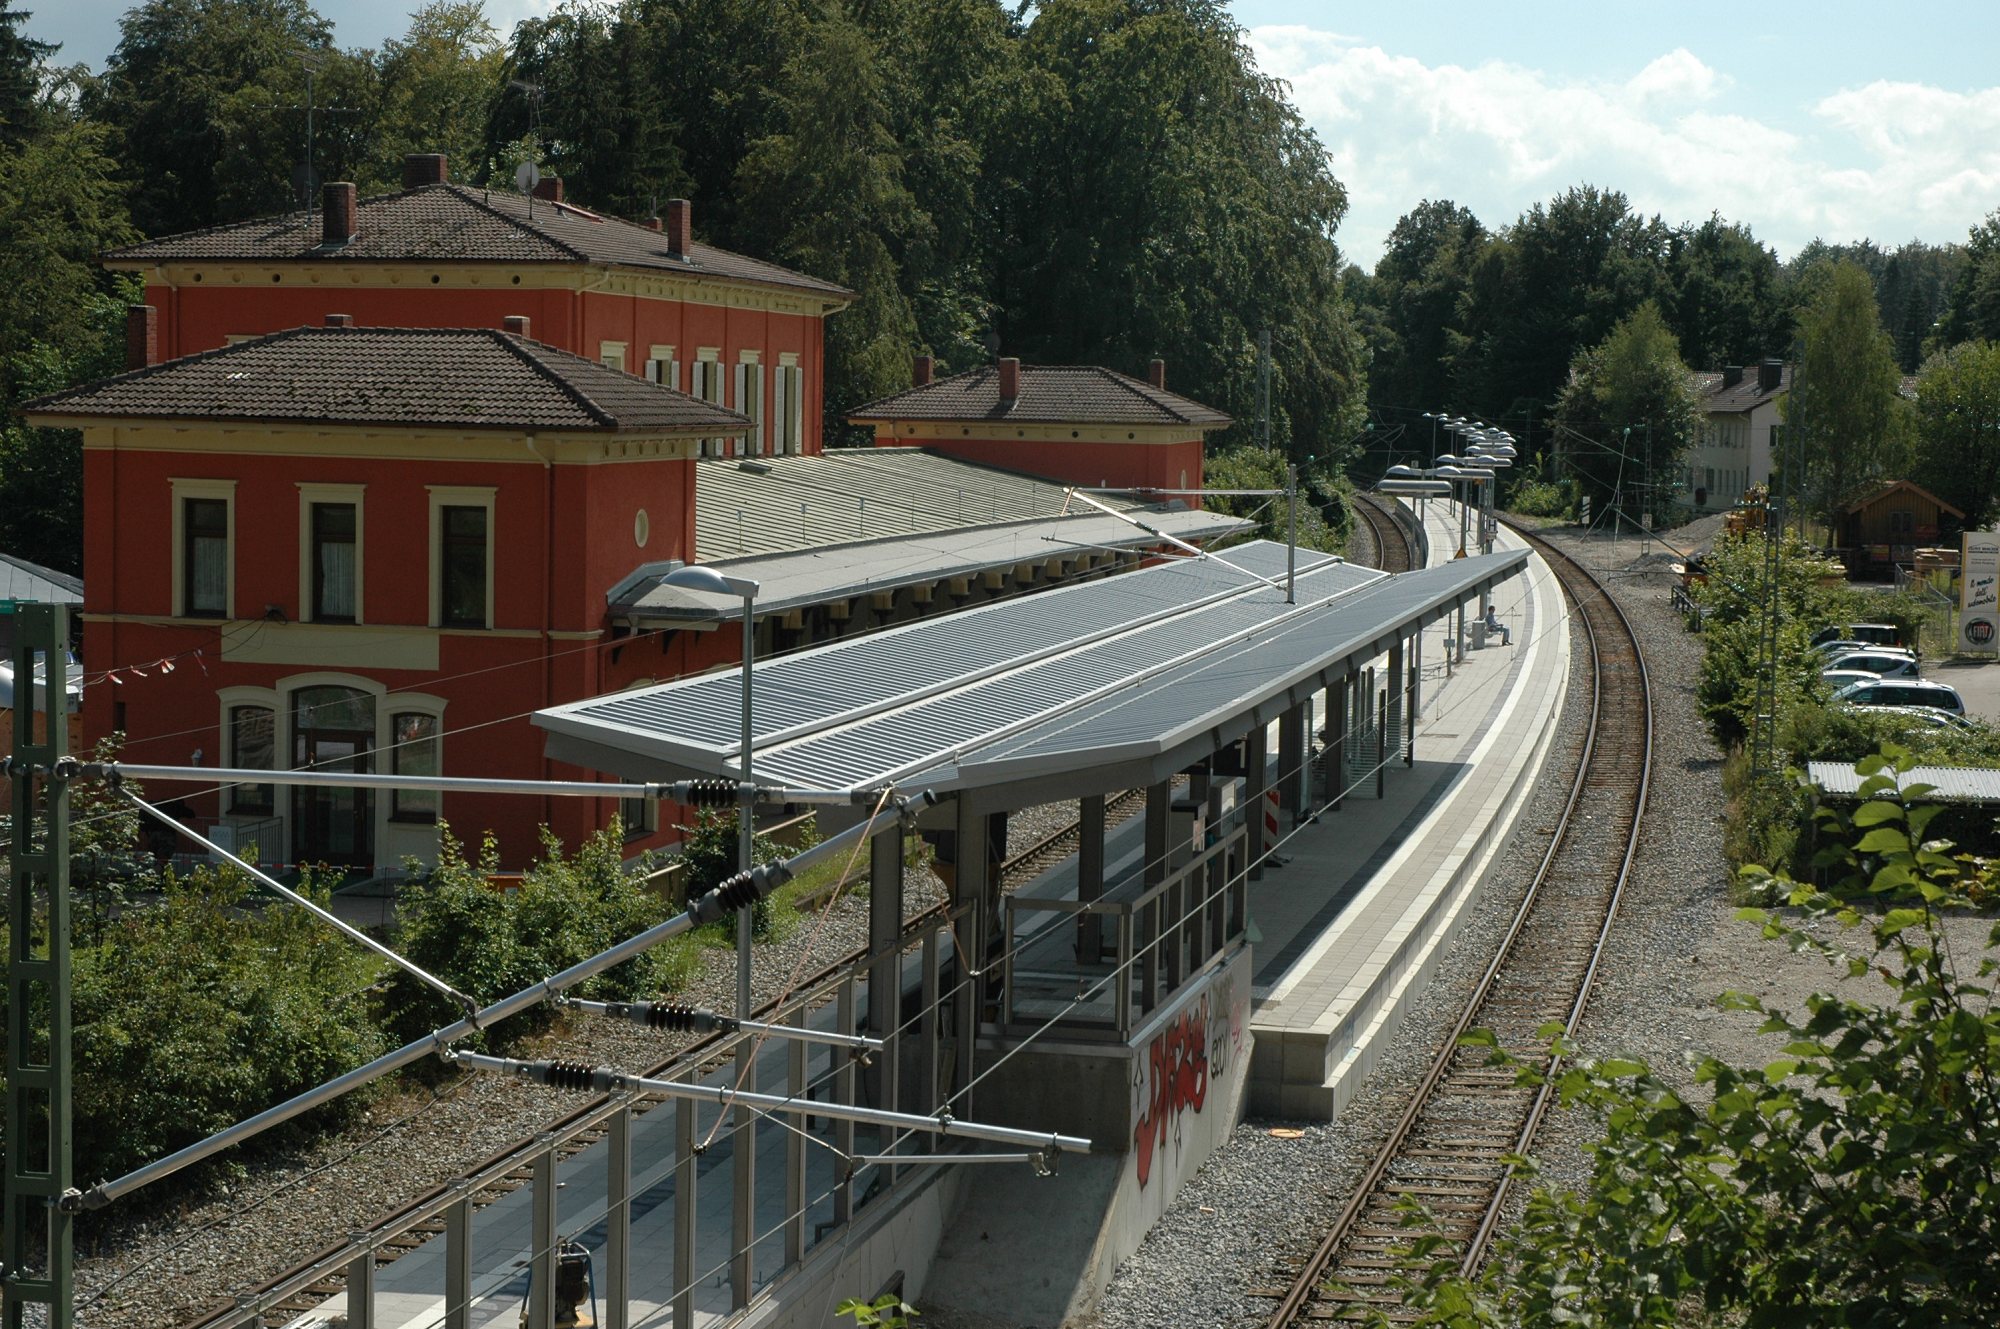 BSK 41 in Possenhofen